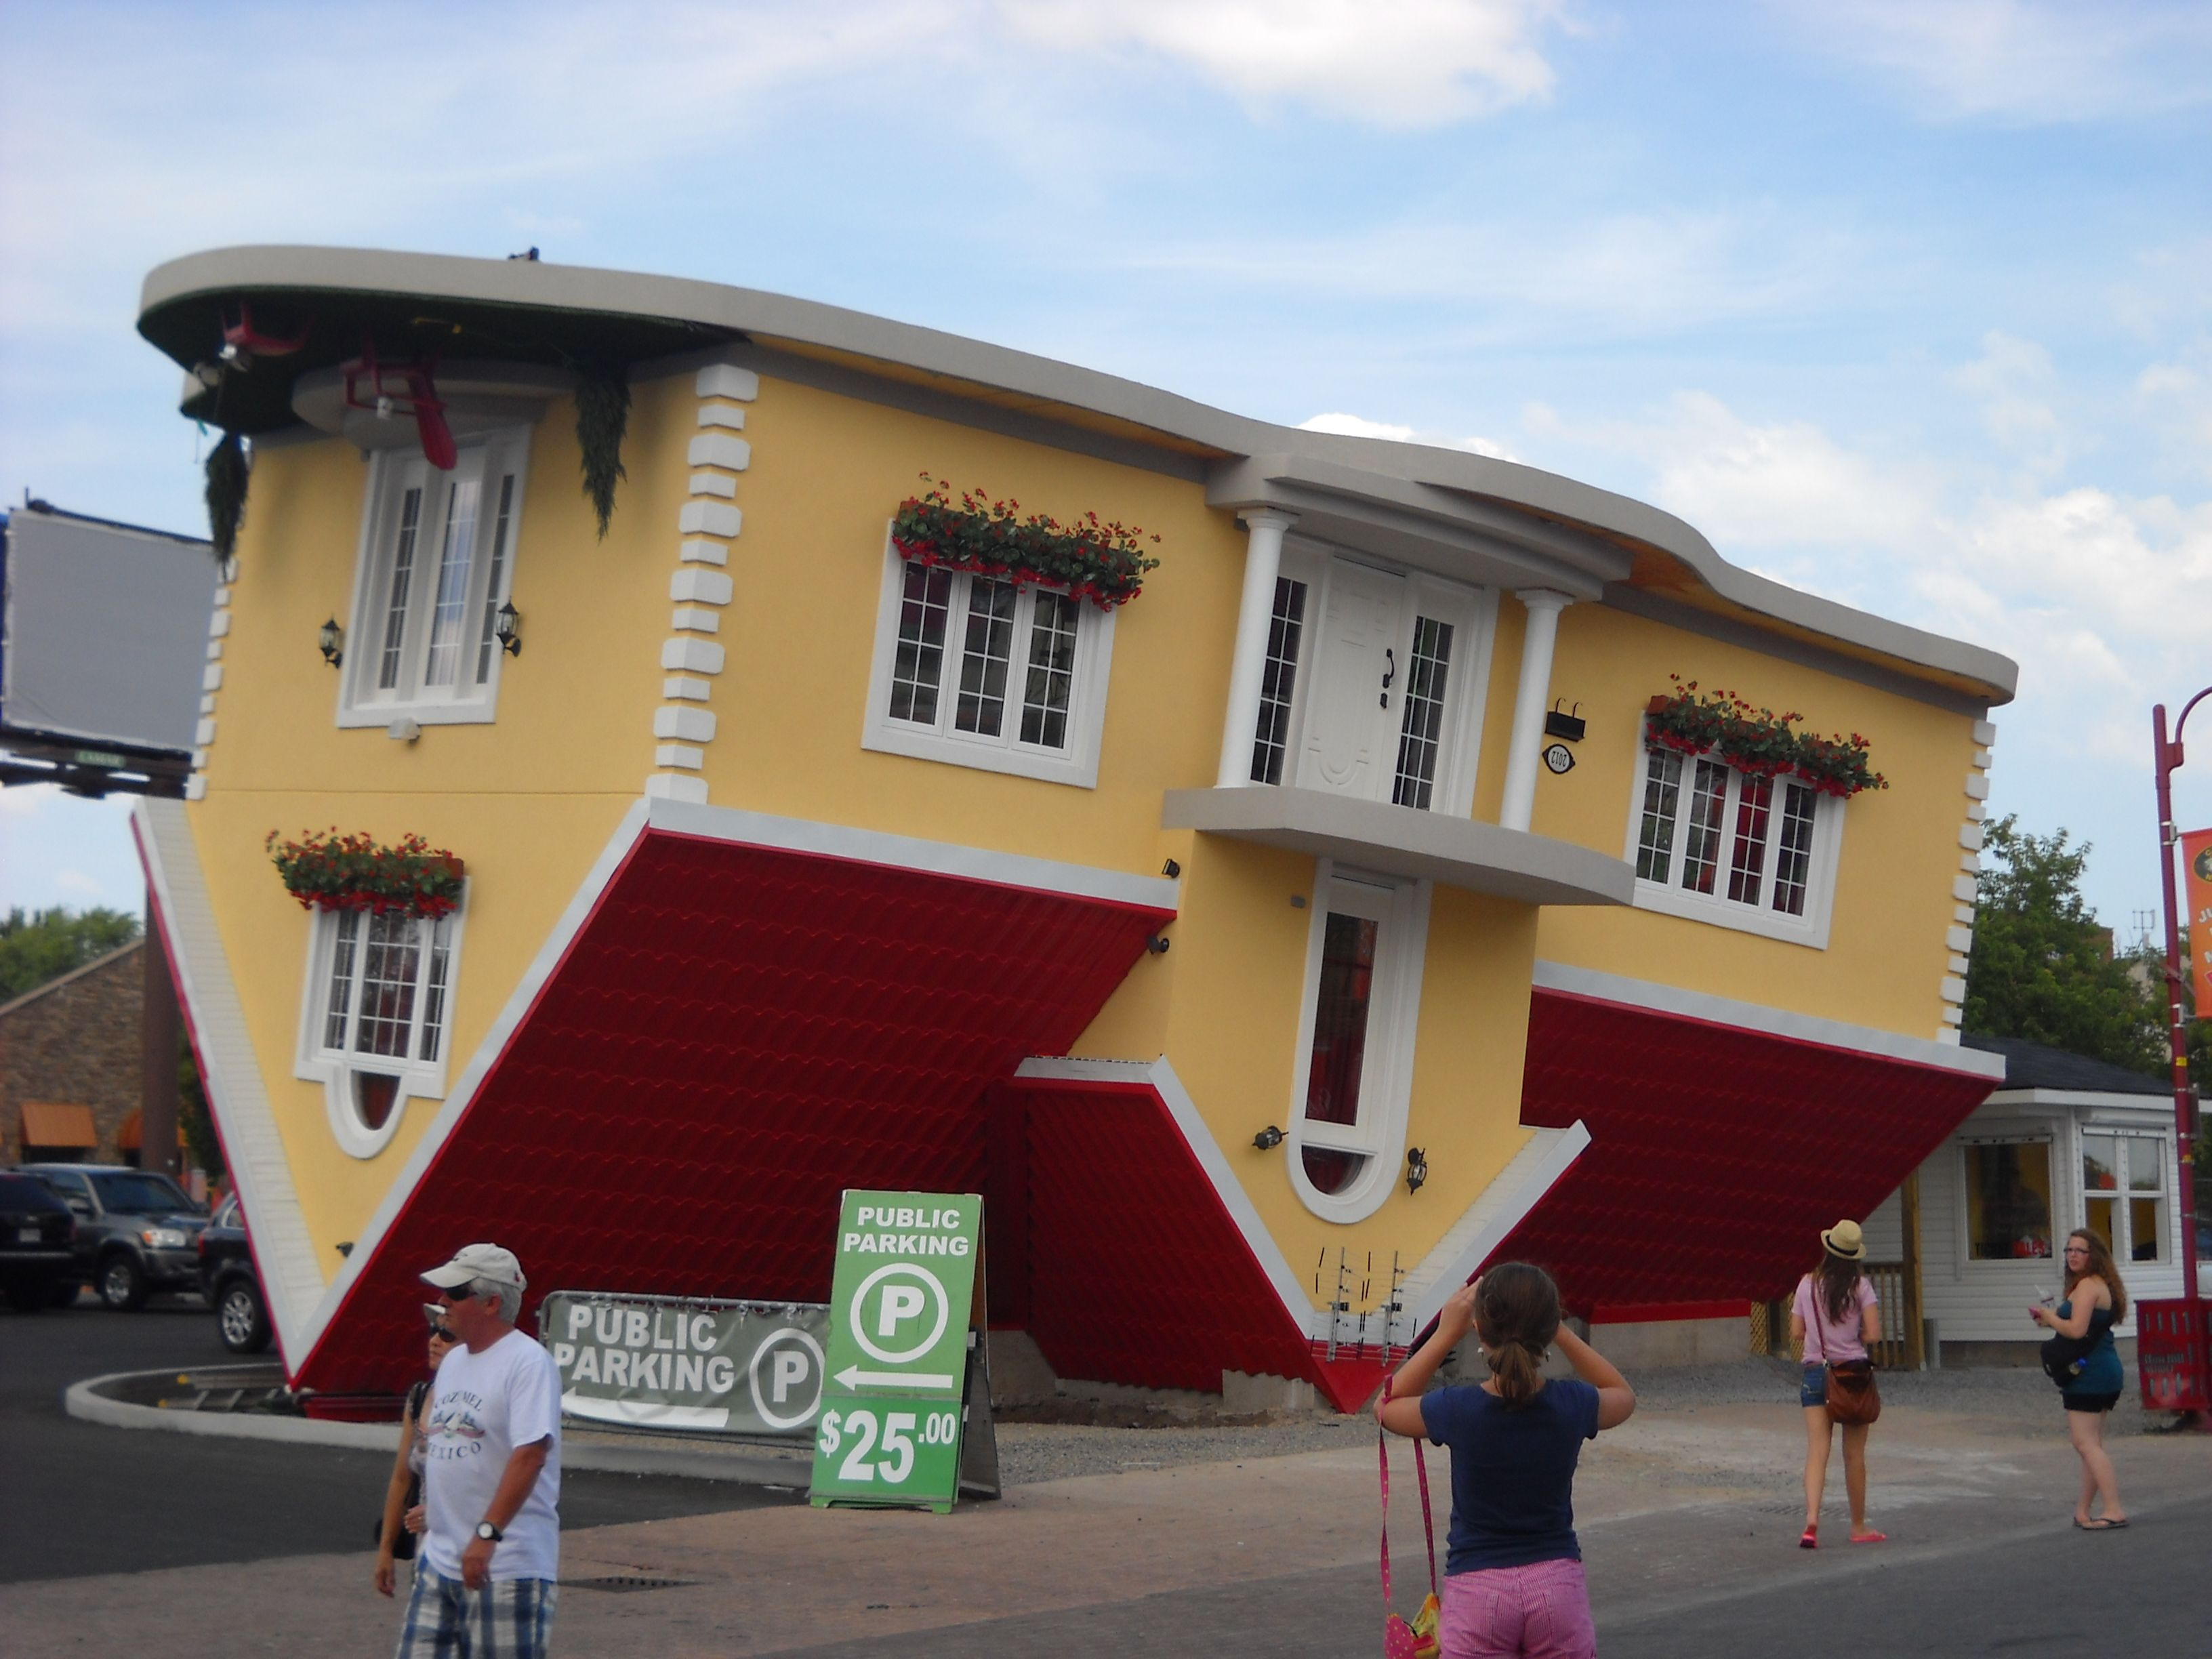 Amazing Upside Down House Architecture Ideas : Niagara Falls Upside on upside down exercise, upside down snowman, upside down sit-ups, upside down train, upside down ten mean, upside down dogs, upside down photography, upside down christmas,